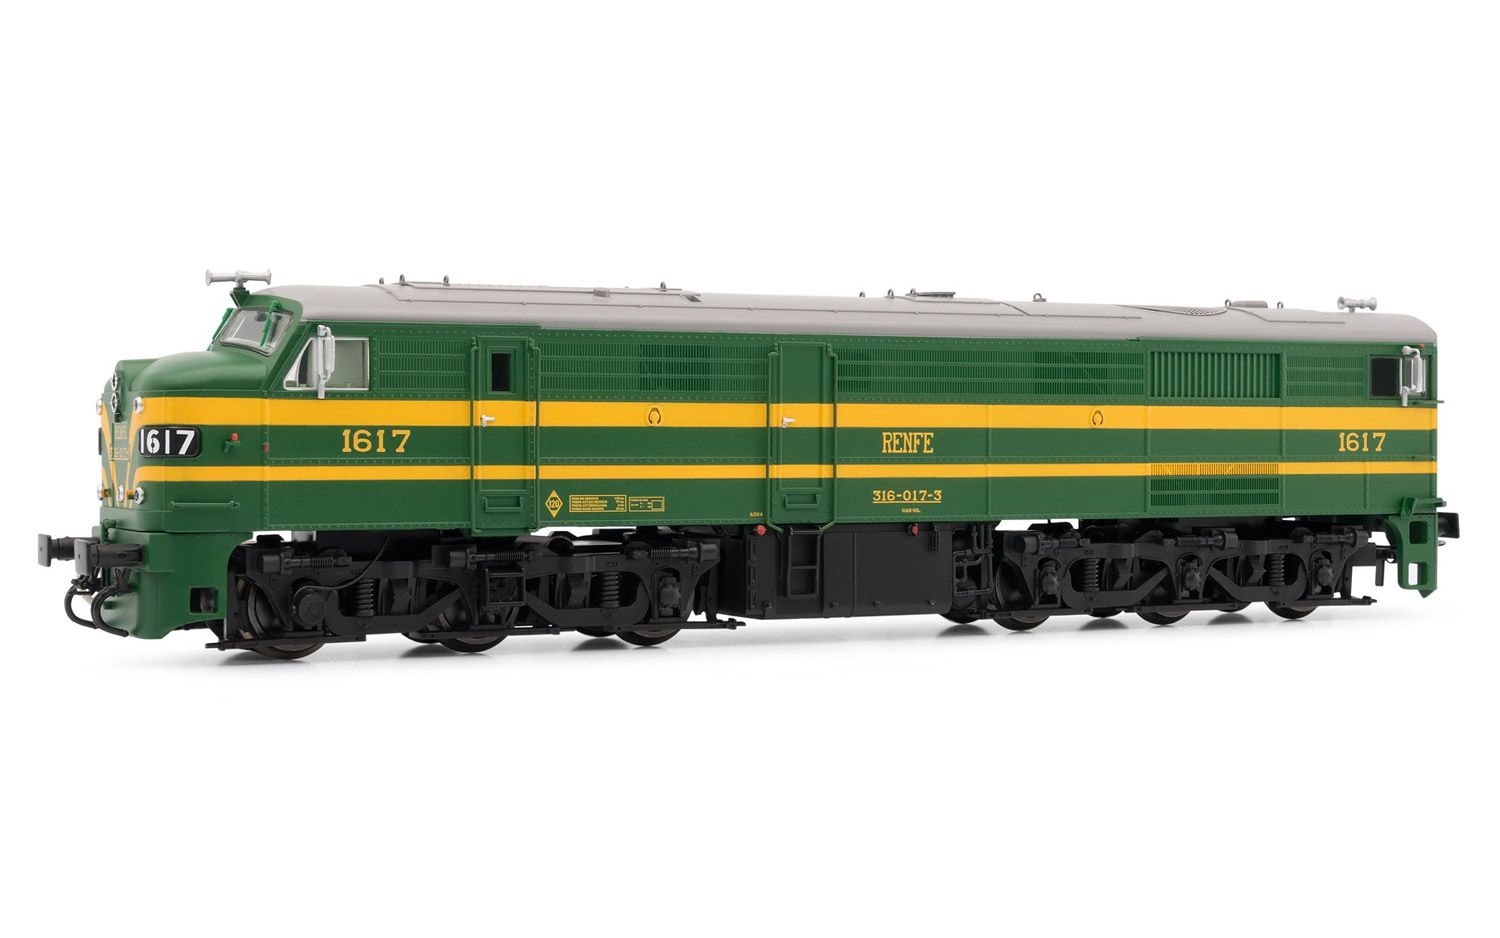 Picture Gallery for Electrotren E2413 Diesel locomotive 316.017 RENFE